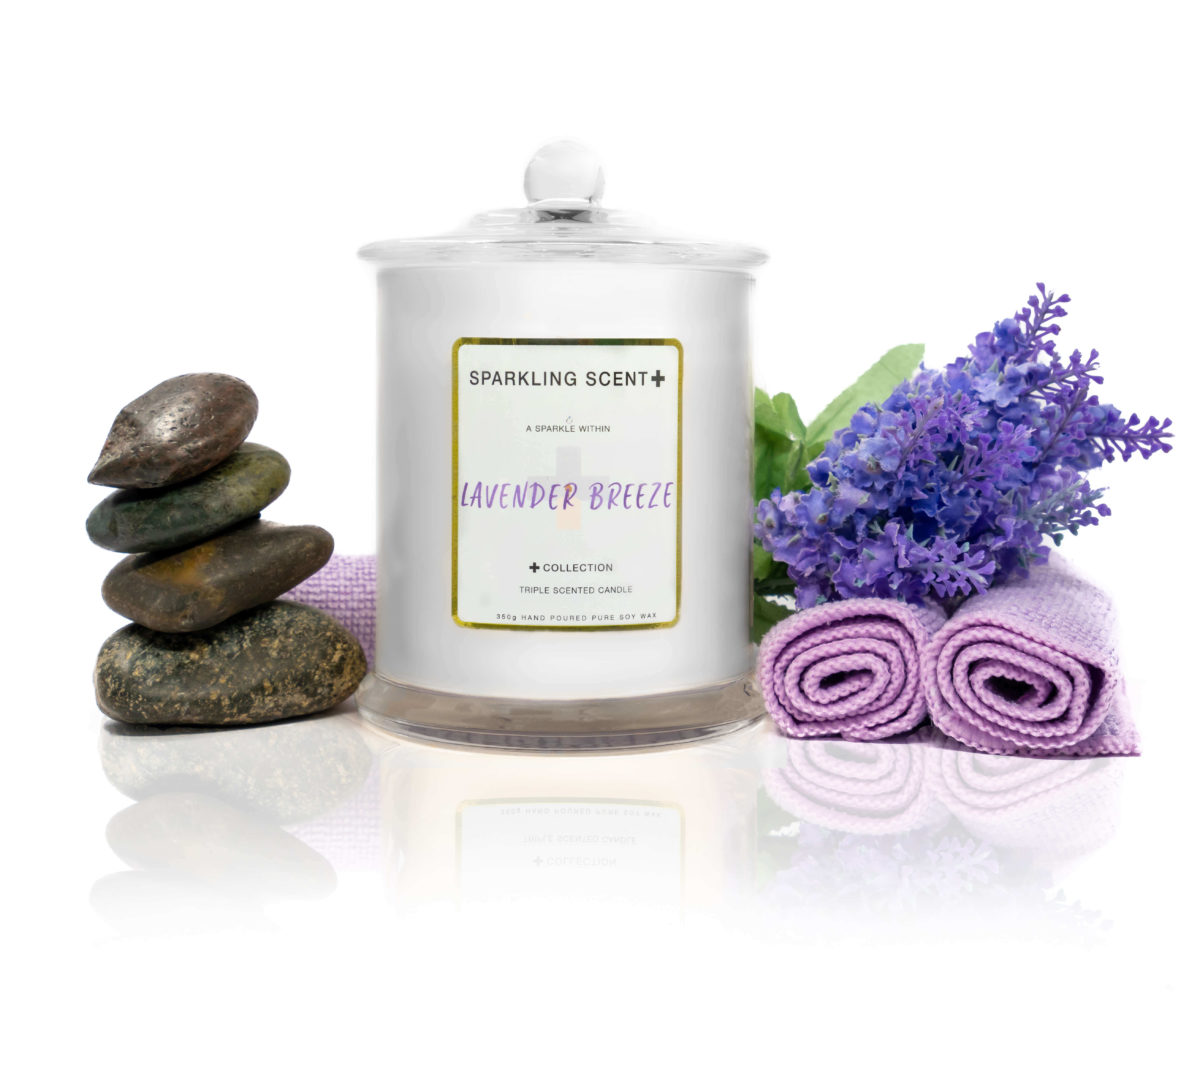 Glossy white shining French Gala Candle with a gold and white sticker. Surrounded by what you can imagine from the scent. Lavender bush, relaxing massage stones & lavender steam towels.